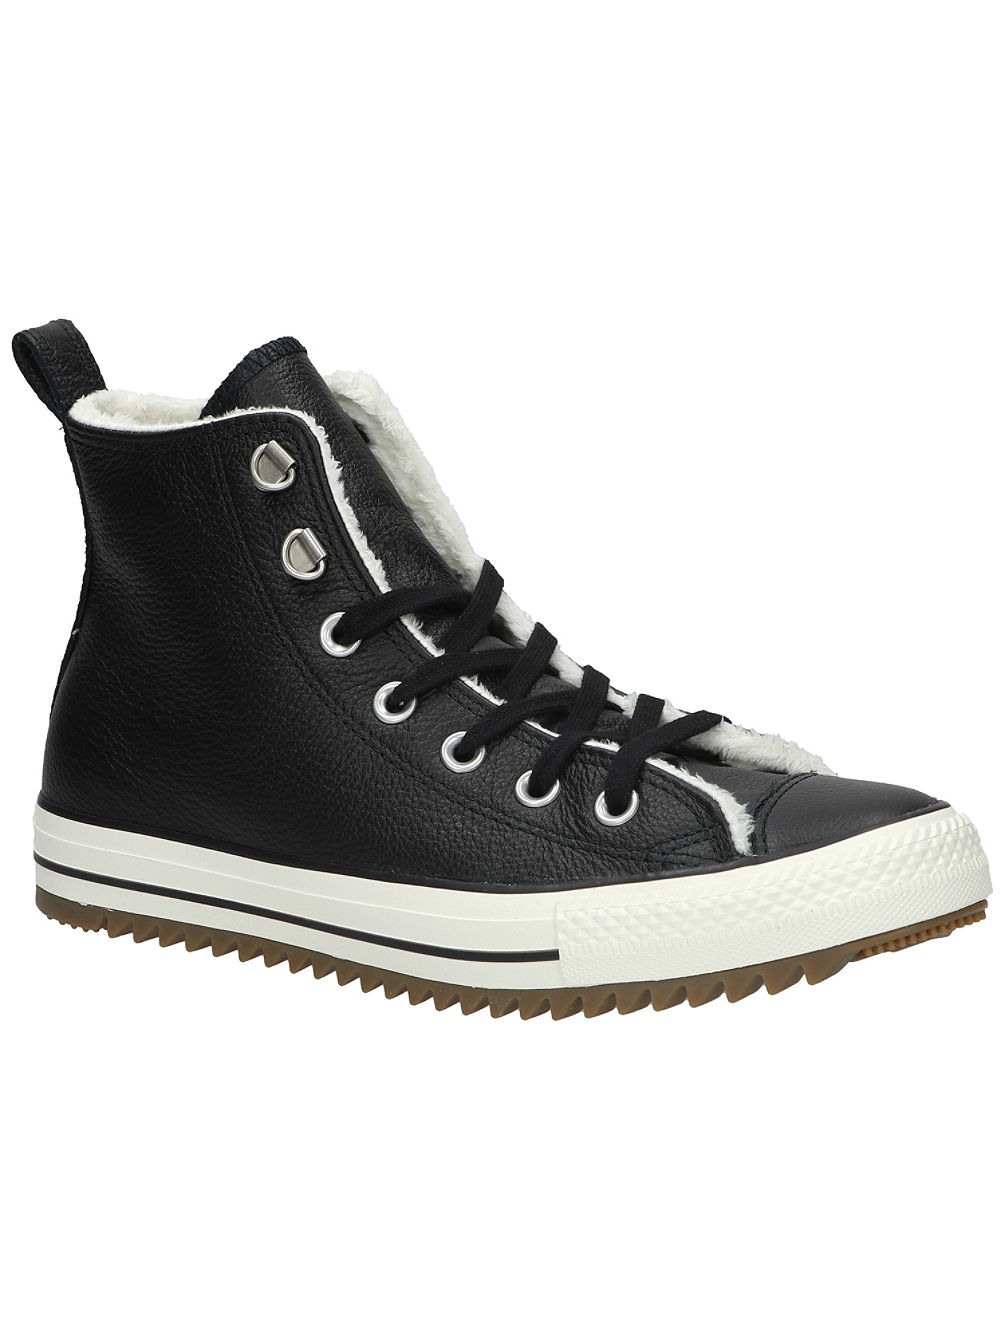 f8e06a0a324be6 Buy Converse Chuck Taylor All Star Hiker Shoes online at blue-tomato.com